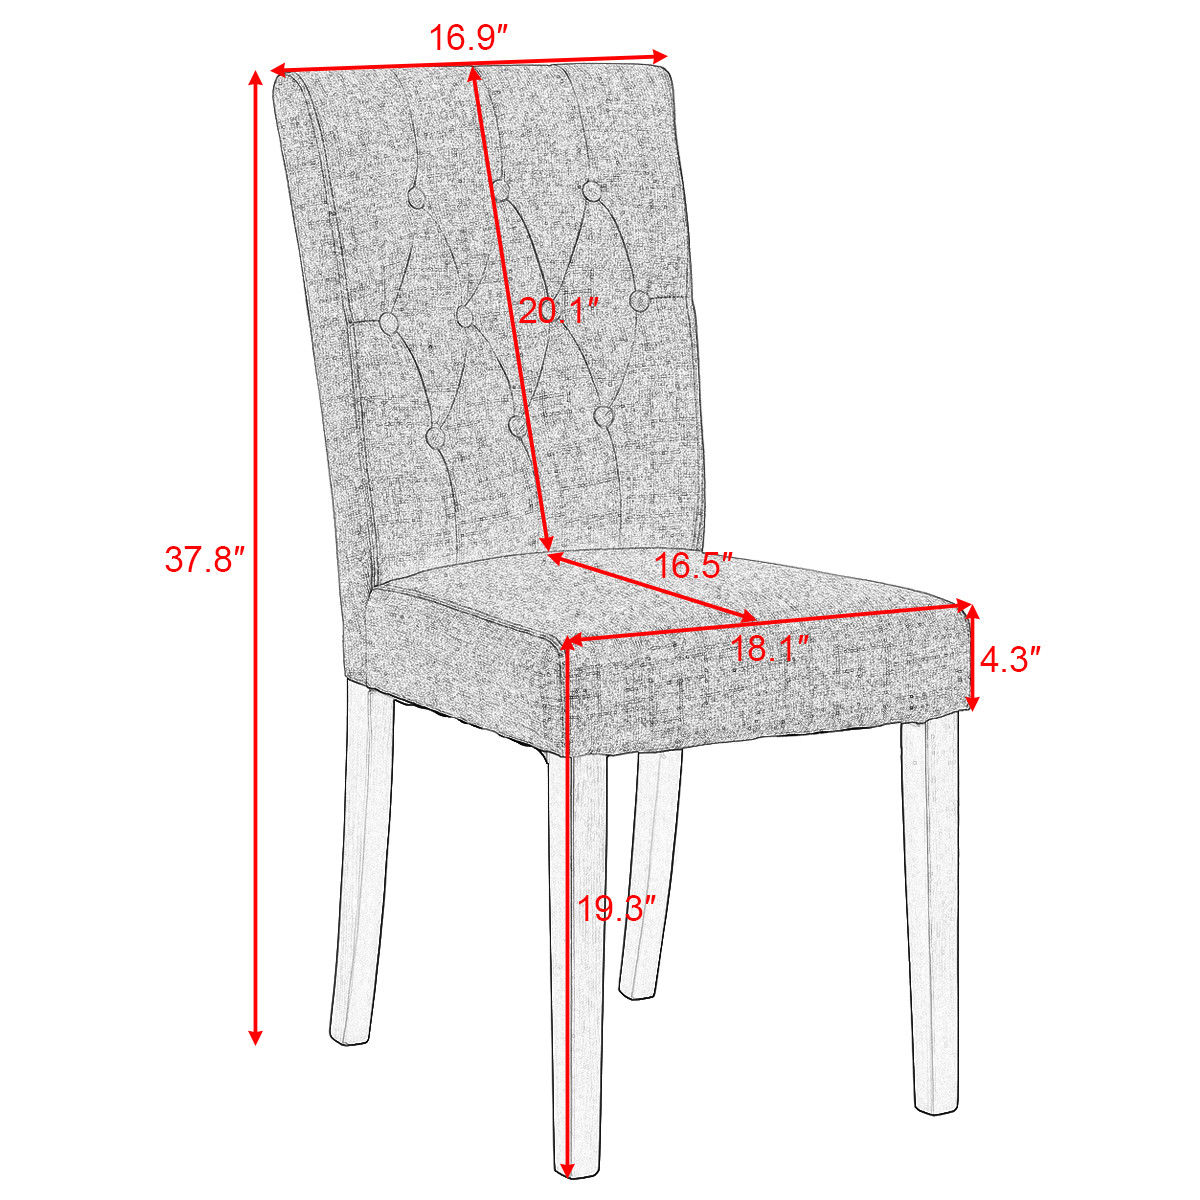 Enjoyable Us 87 99 Giantex Set Of 2 Modern Dining Chair Fabric Armless Accent Tufted Upholstered With Solid Wood Legs Furniture Hw52778Bn On Aliexpress Gmtry Best Dining Table And Chair Ideas Images Gmtryco